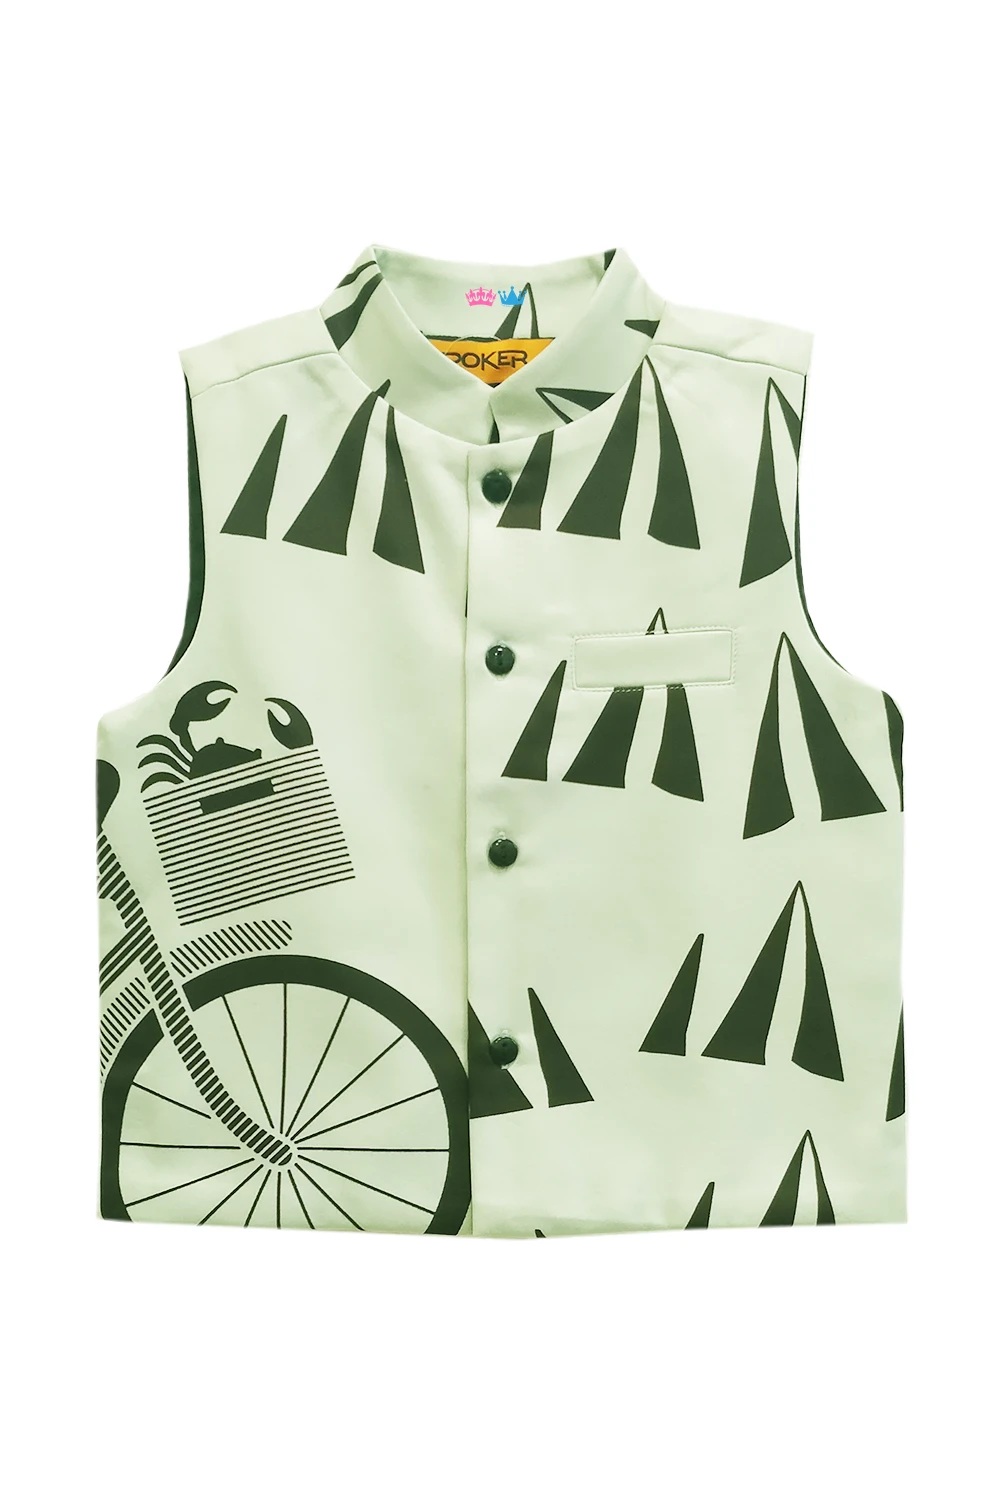 Band Neck Cycle Printed Nehru Jacket Boys clothes style